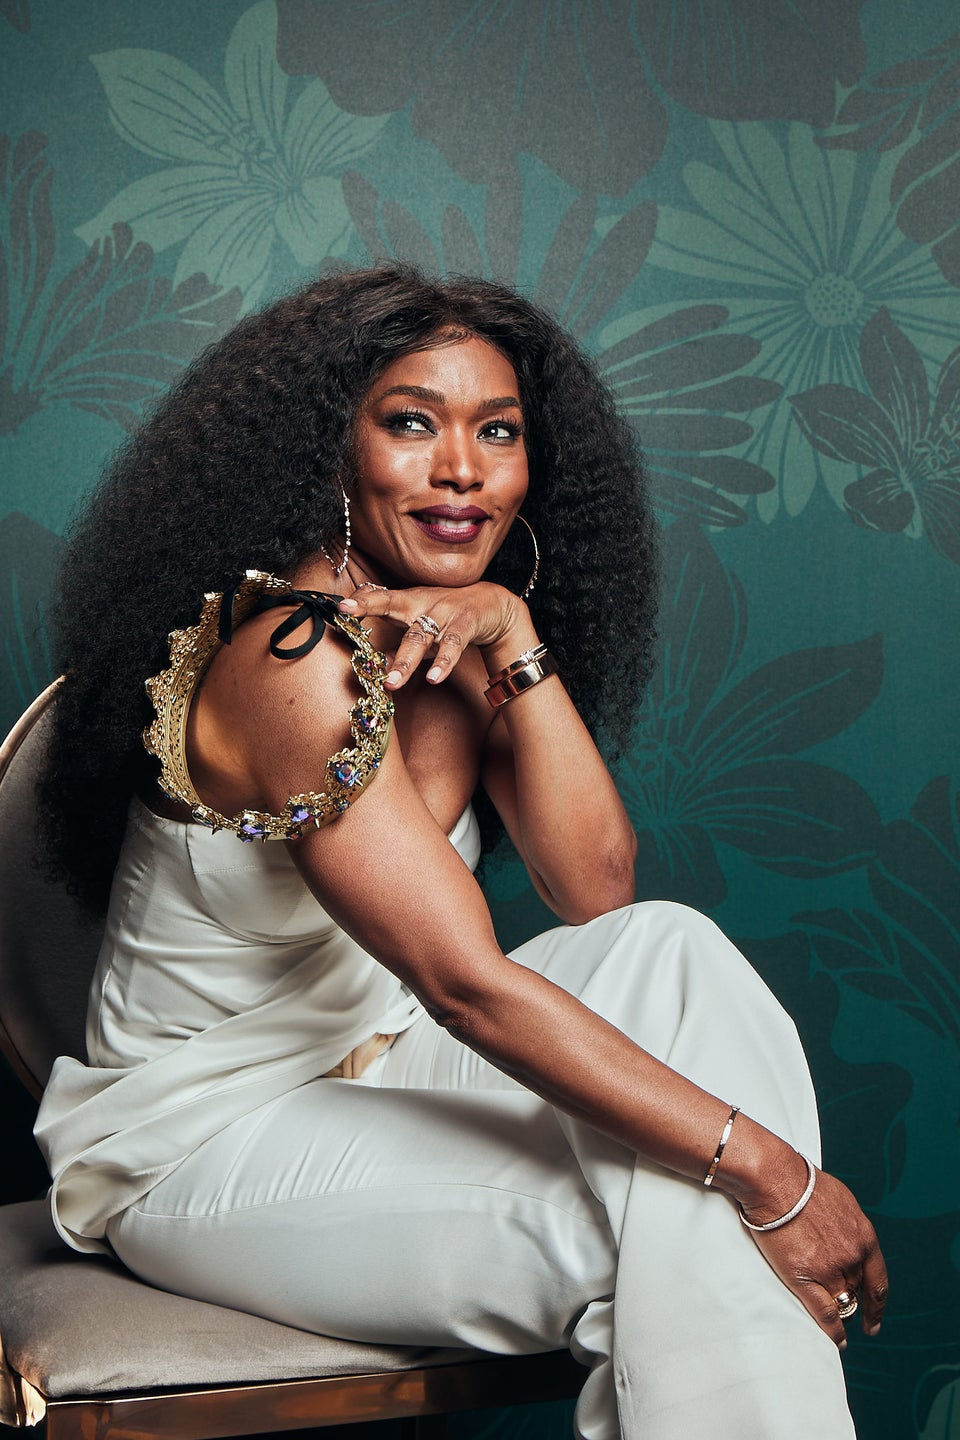 Angela Bassett Reveals The One Thing She Took From 'Black Panther' Set